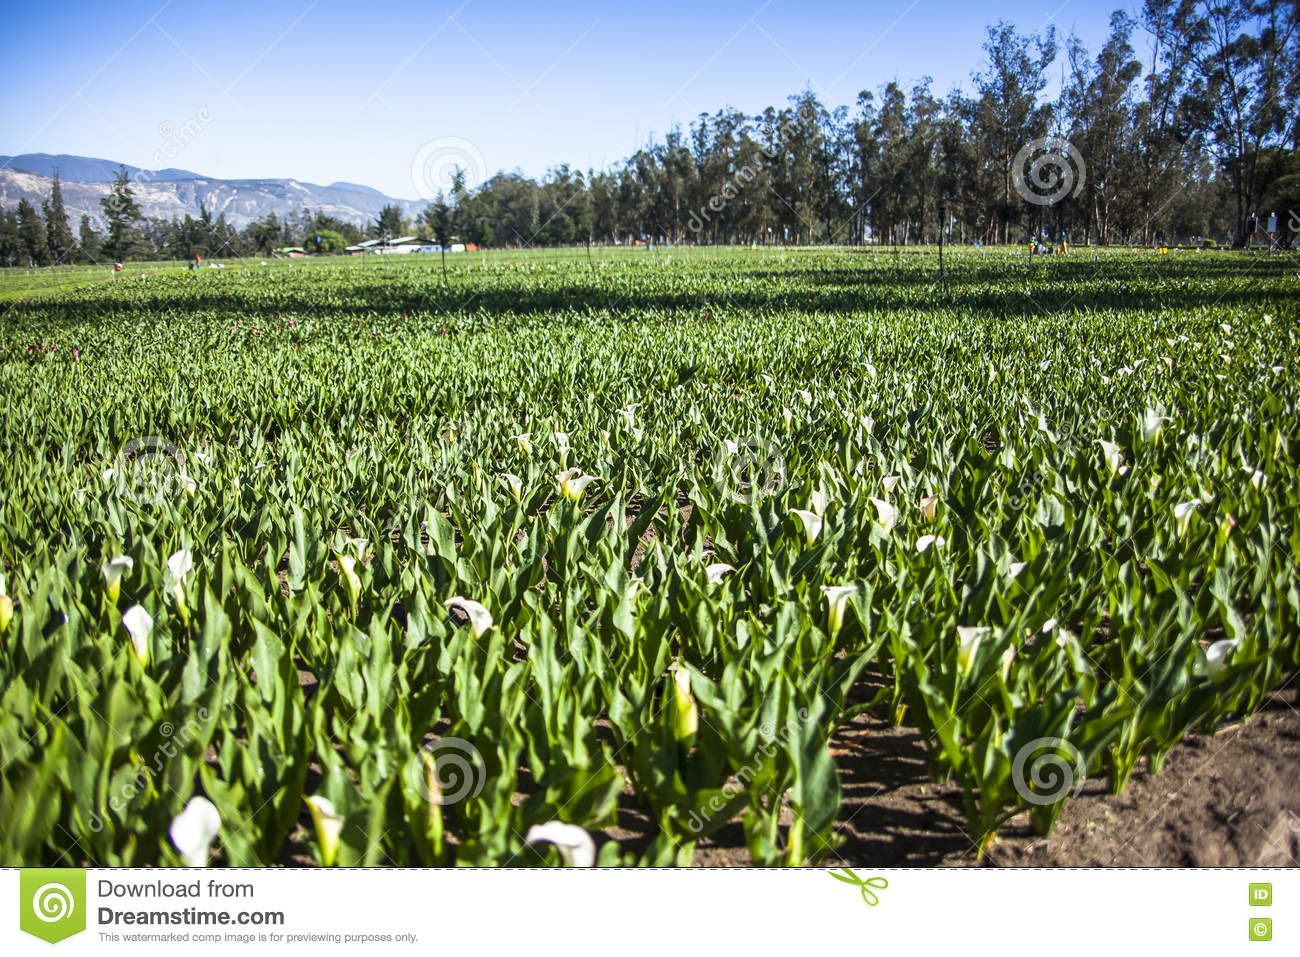 Calla lily plantation stock photo. Image of lilies, bloom ...